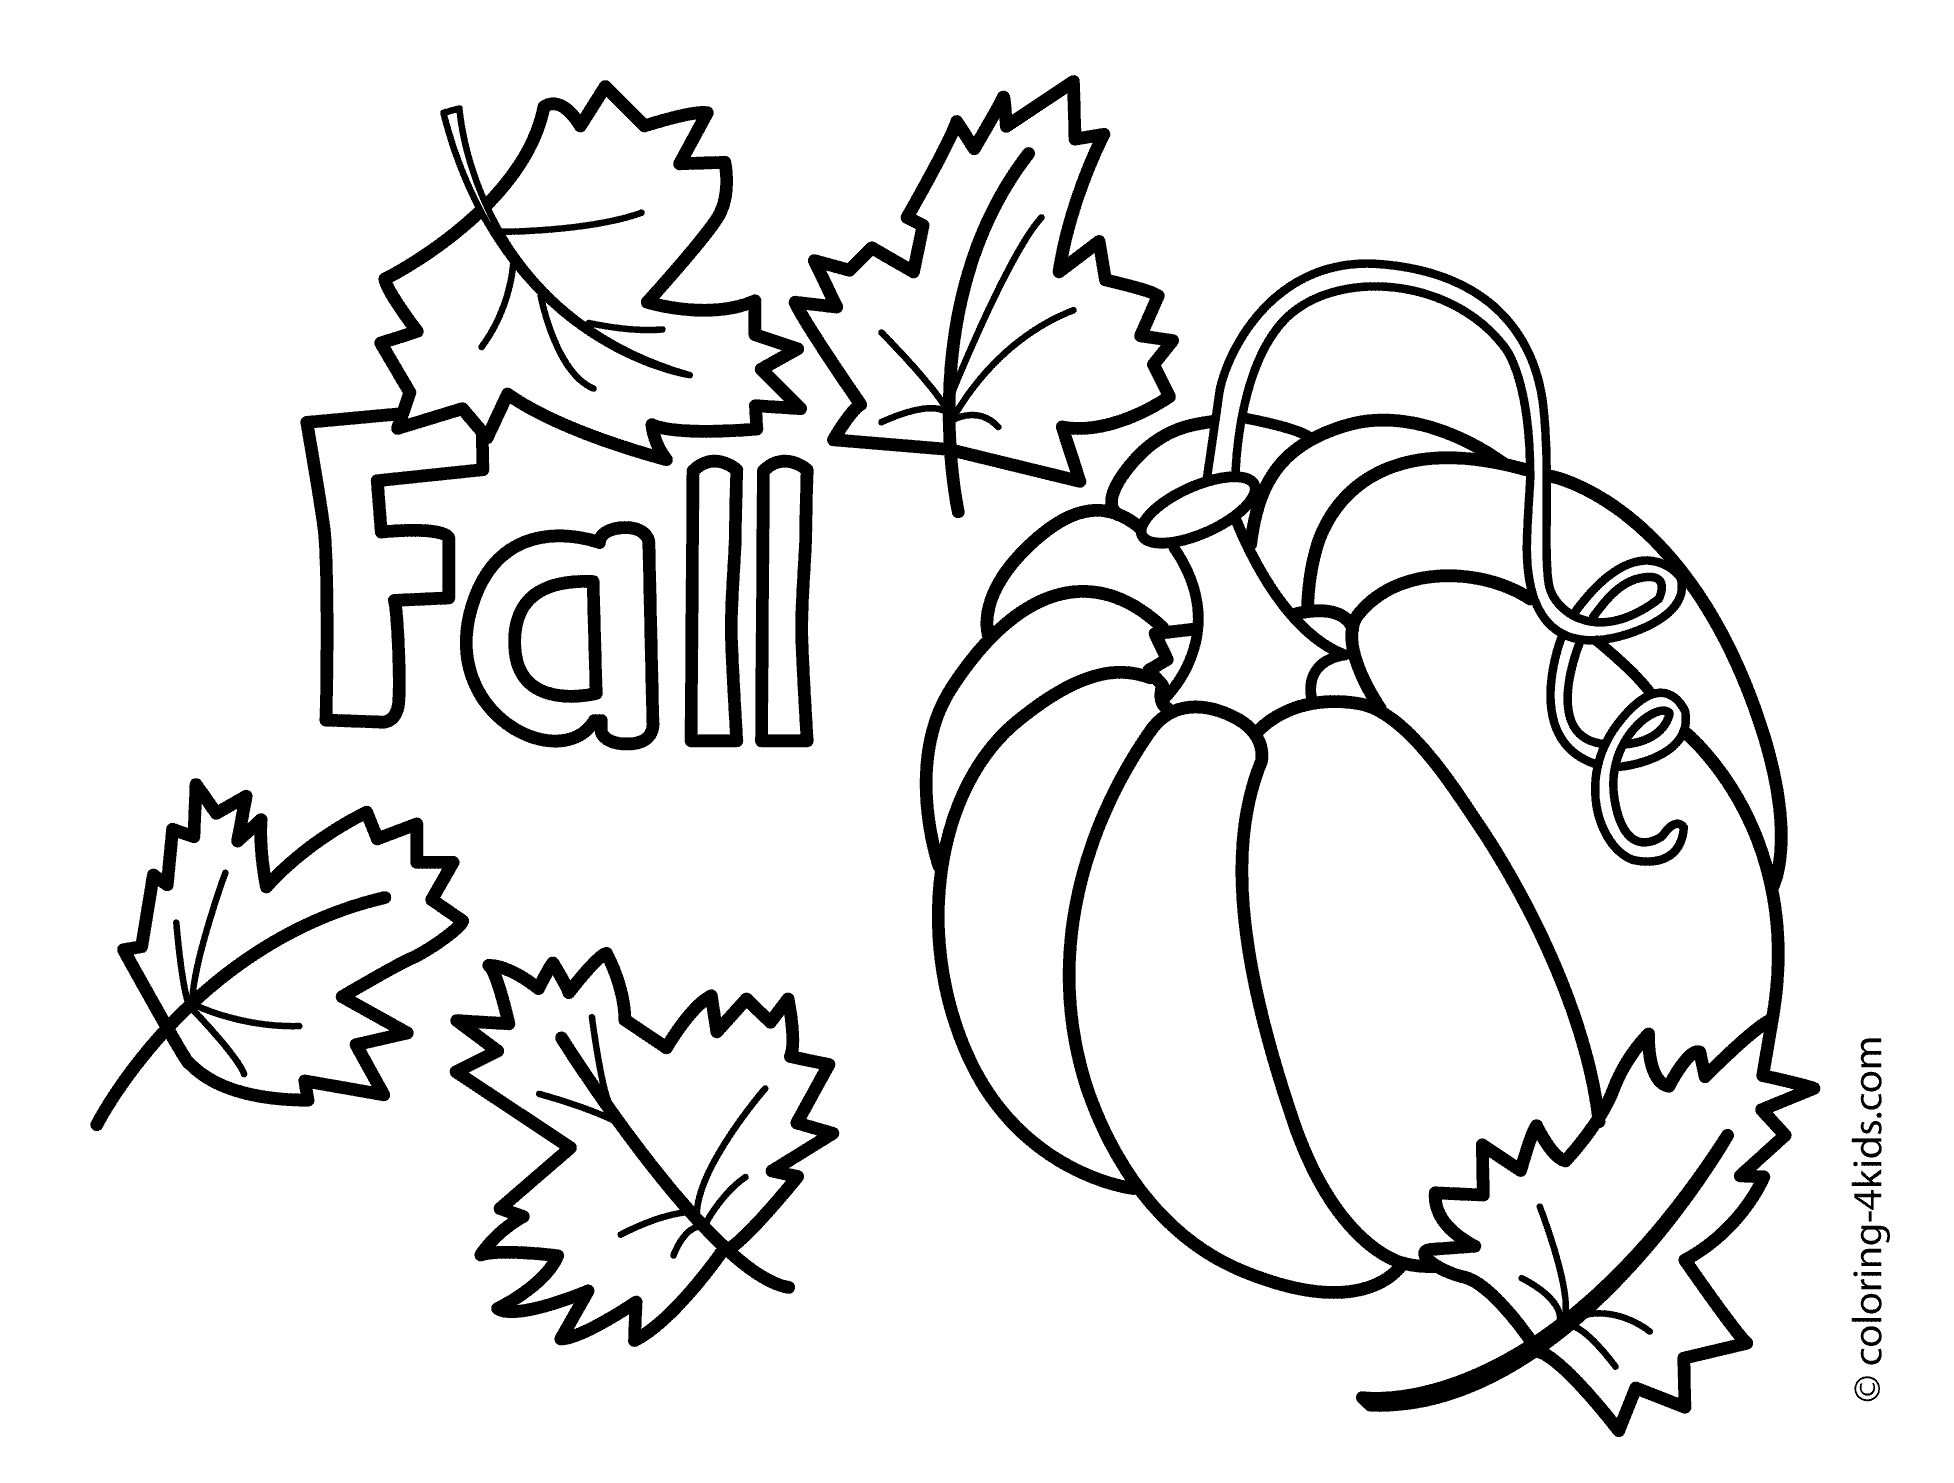 1954x1483 Best Of Fall Flower Coloring Pages Collection Printable Coloring